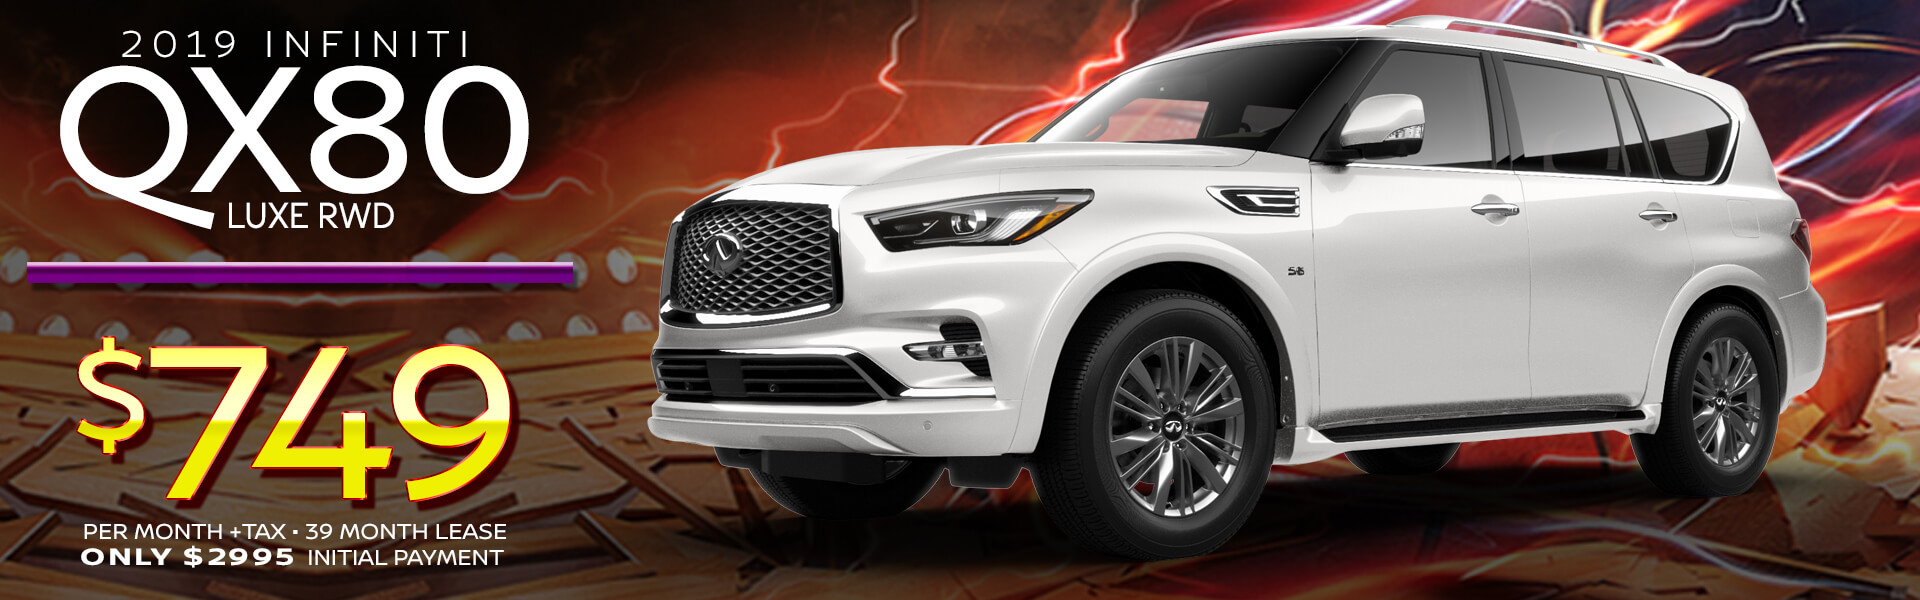 QX80 HP Offer